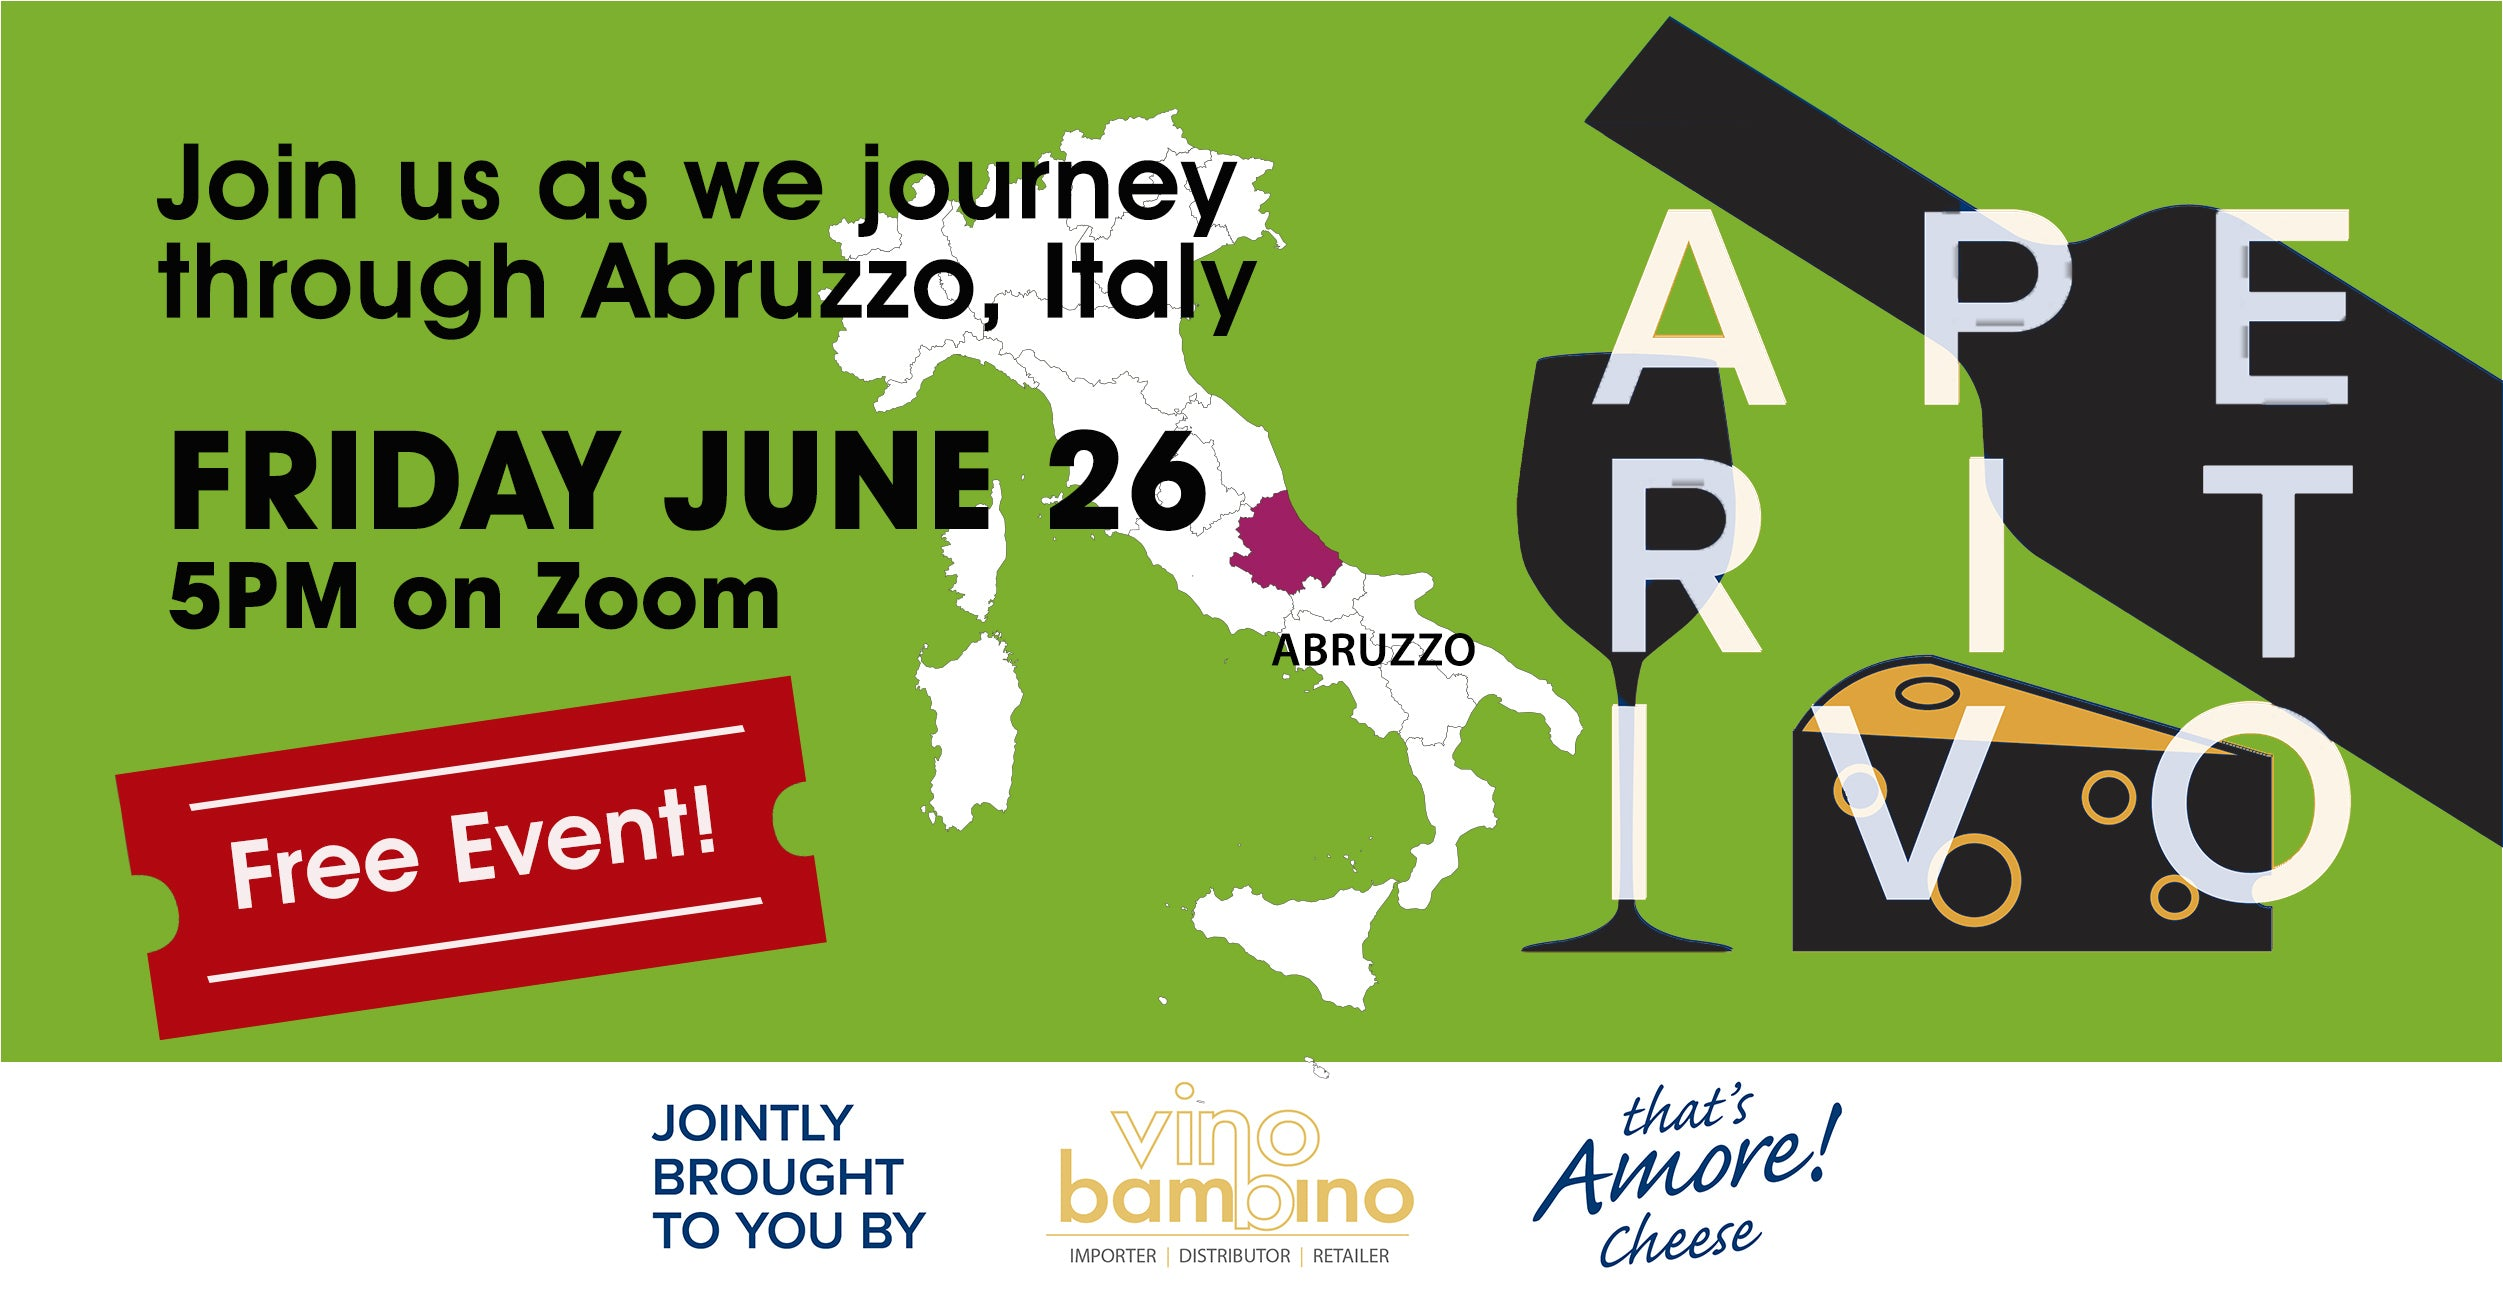 Free Event: Let's journey through Abruzzo